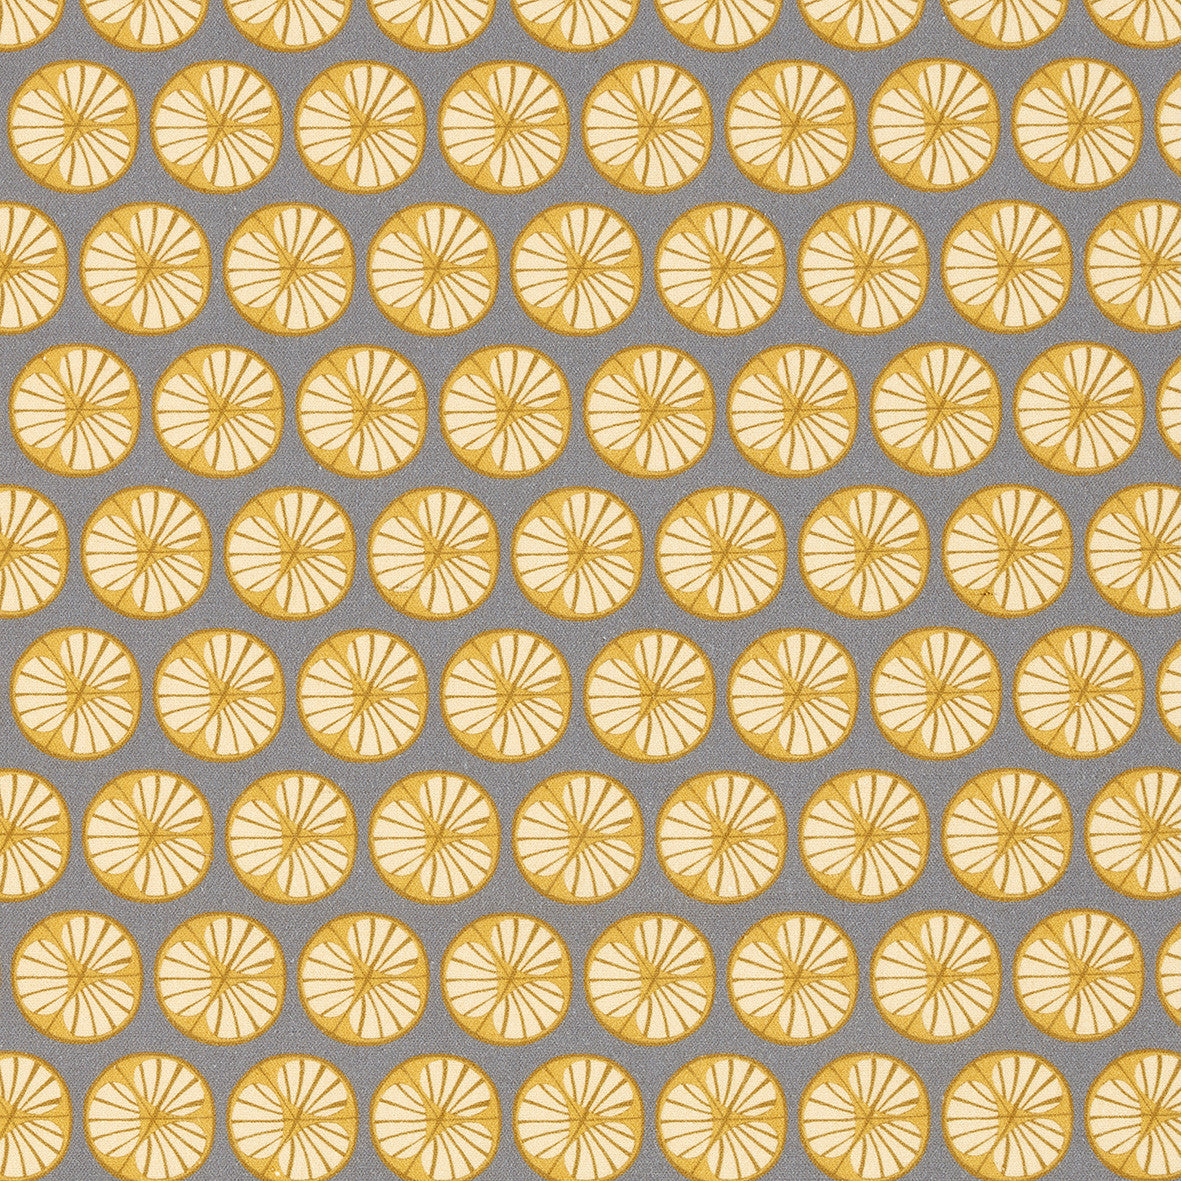 Graphic Cross Section of Fruit Pattern Printed Linen Cotton Canvas Fabric in Light Dove Grey and Saffron Yellow